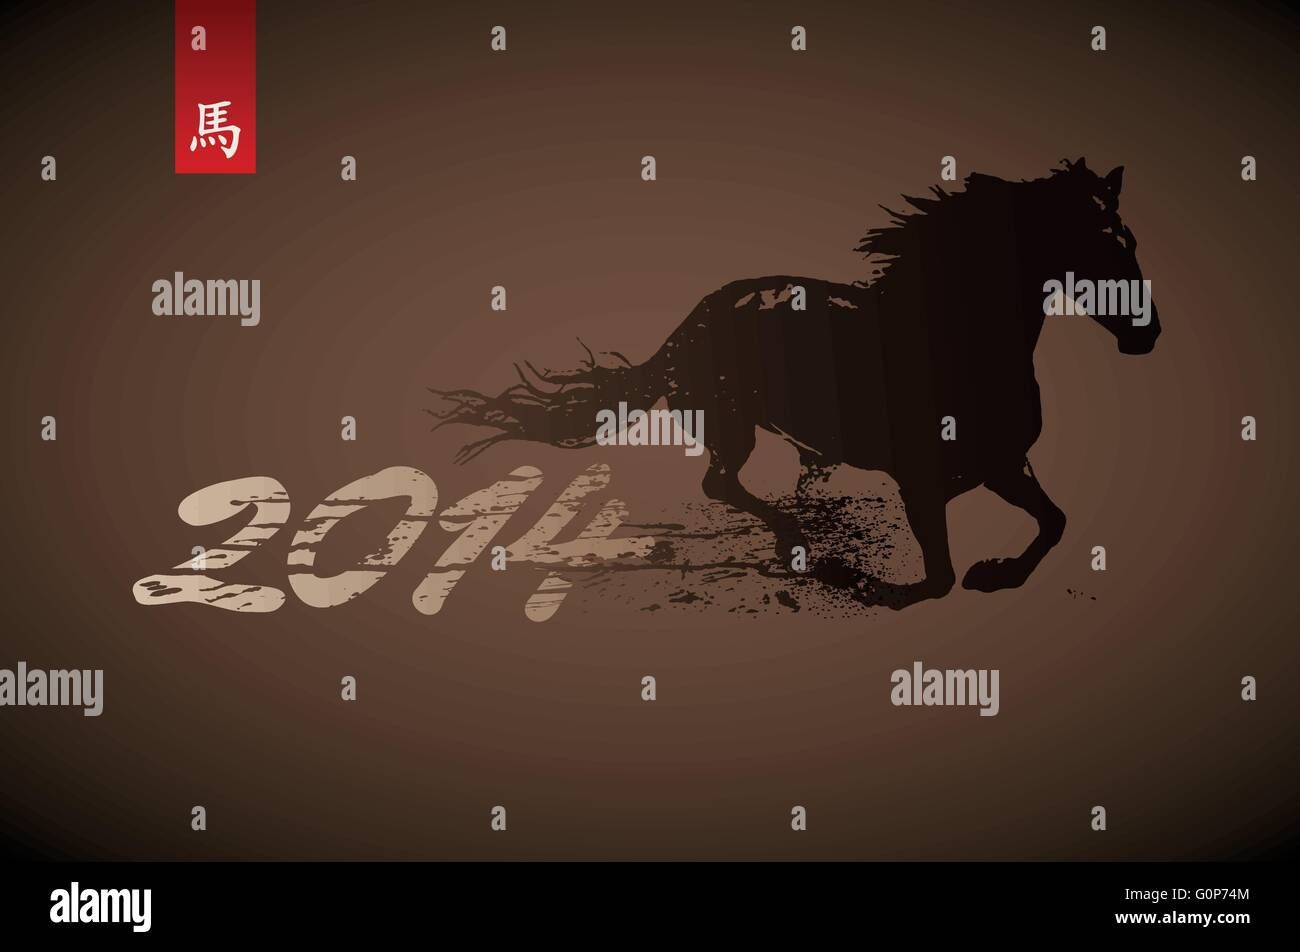 Chinese New Year Vectors Stockfotos & Chinese New Year Vectors ...